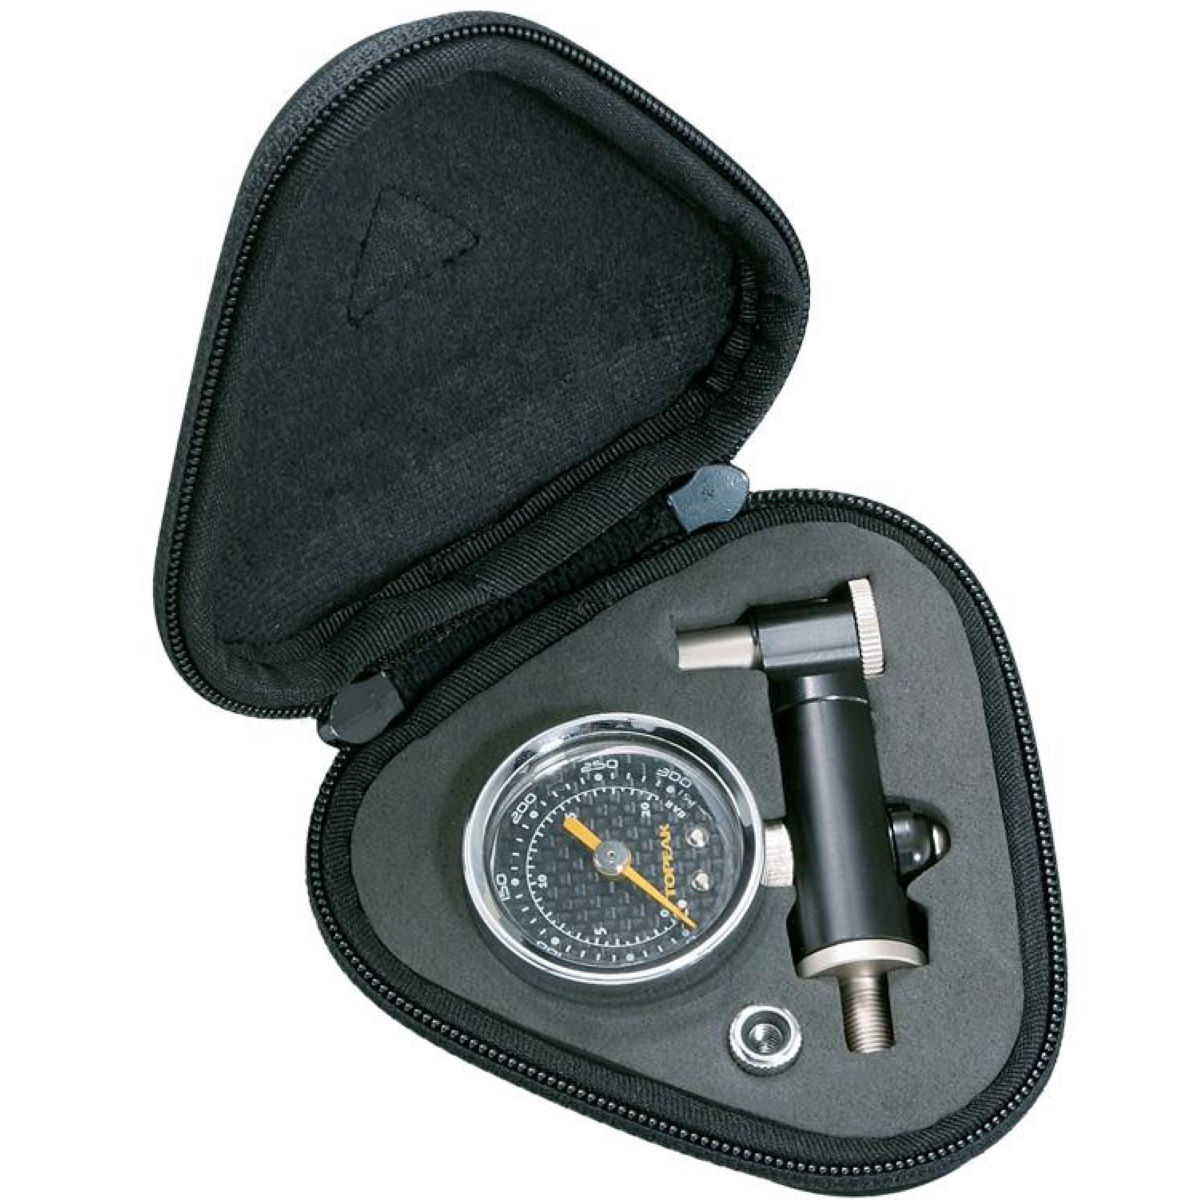 Topeak Topeak Shuttle Gauge & Bag   Hand Pumps